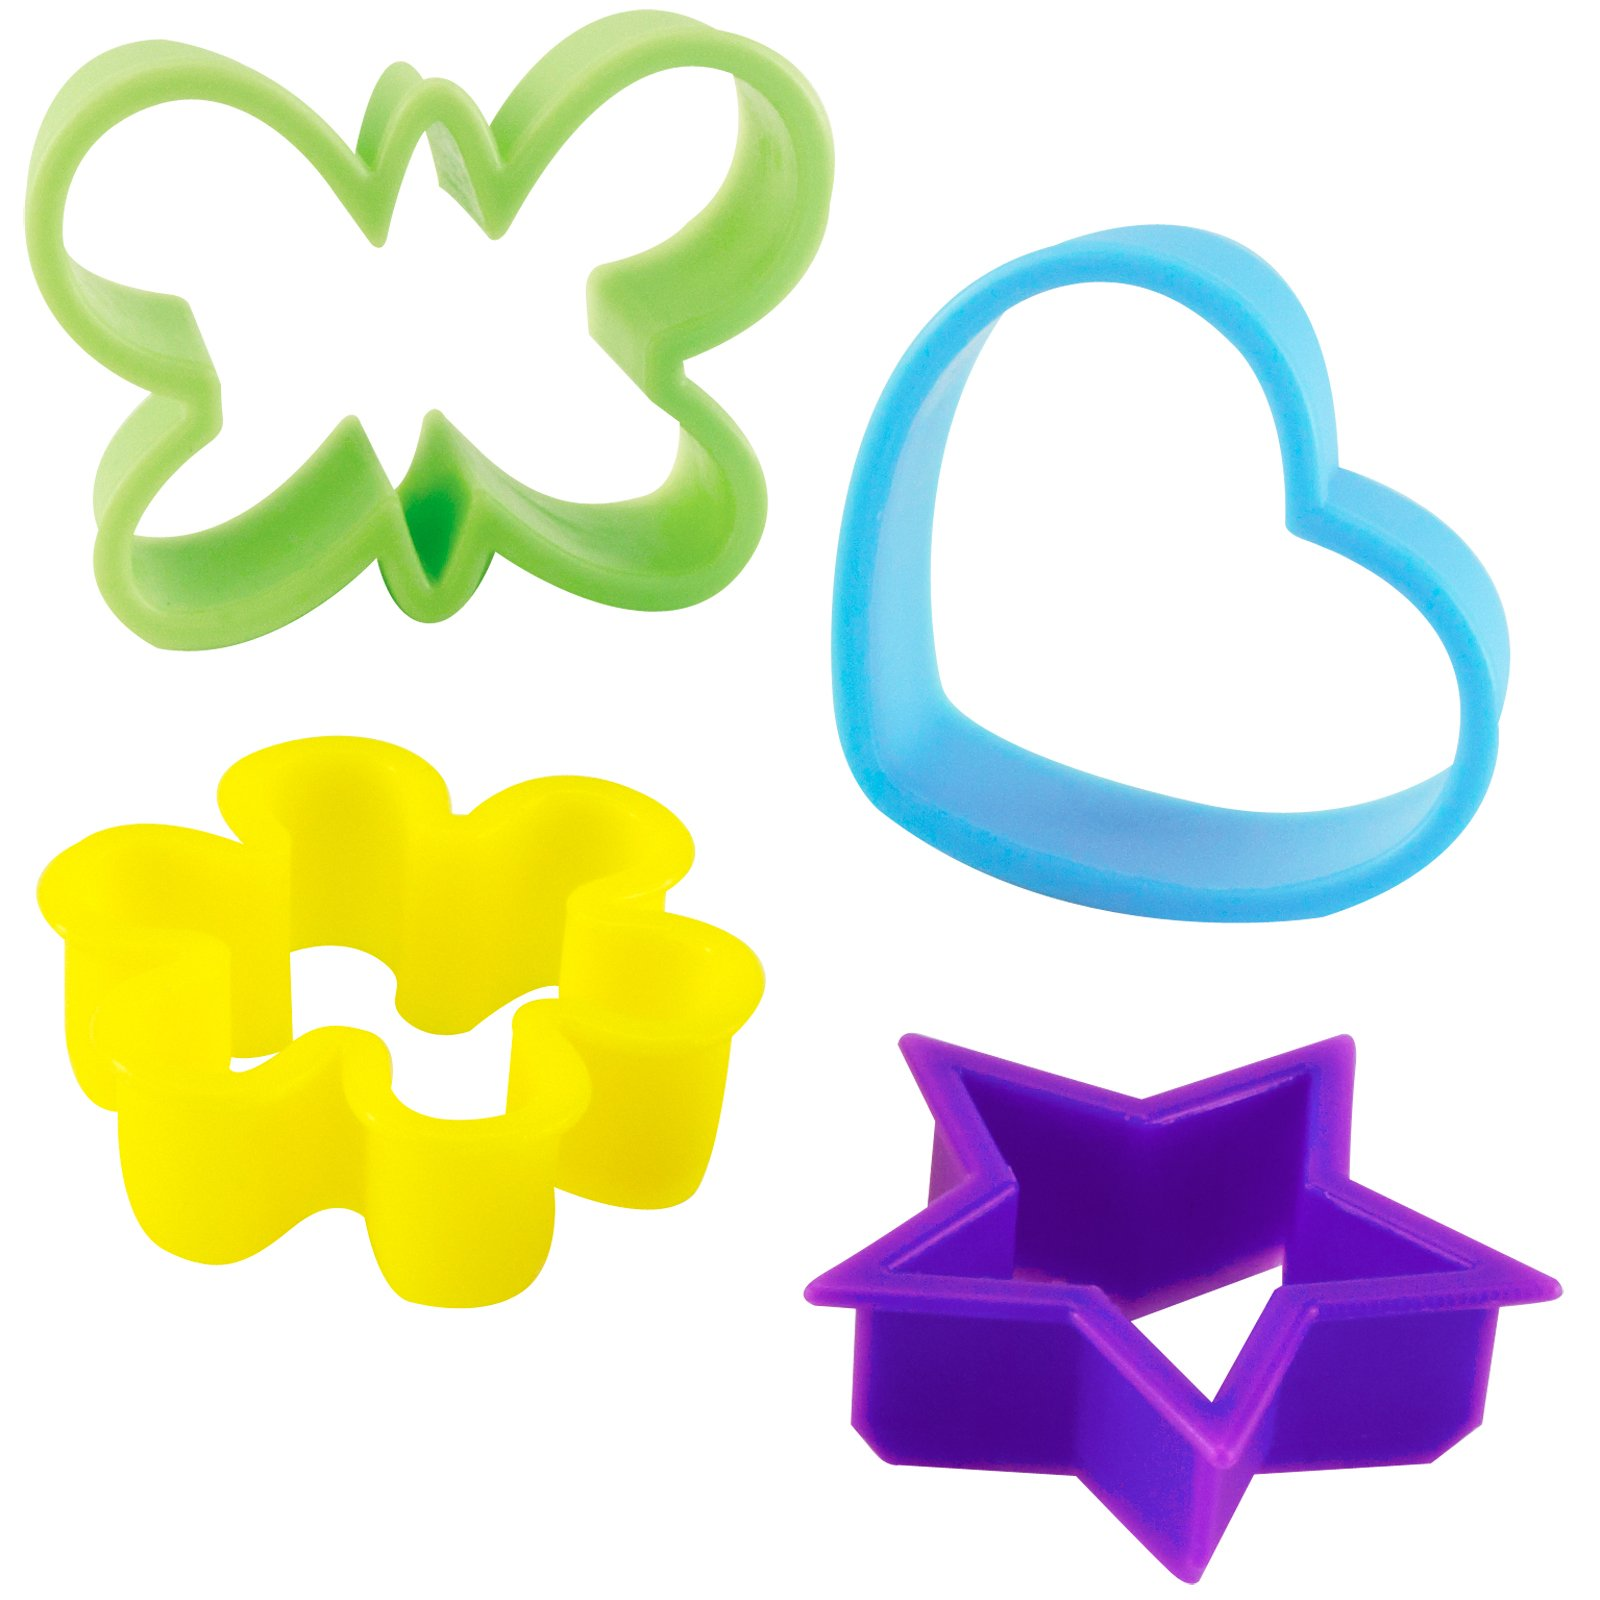 Cookie cutter clipart #14